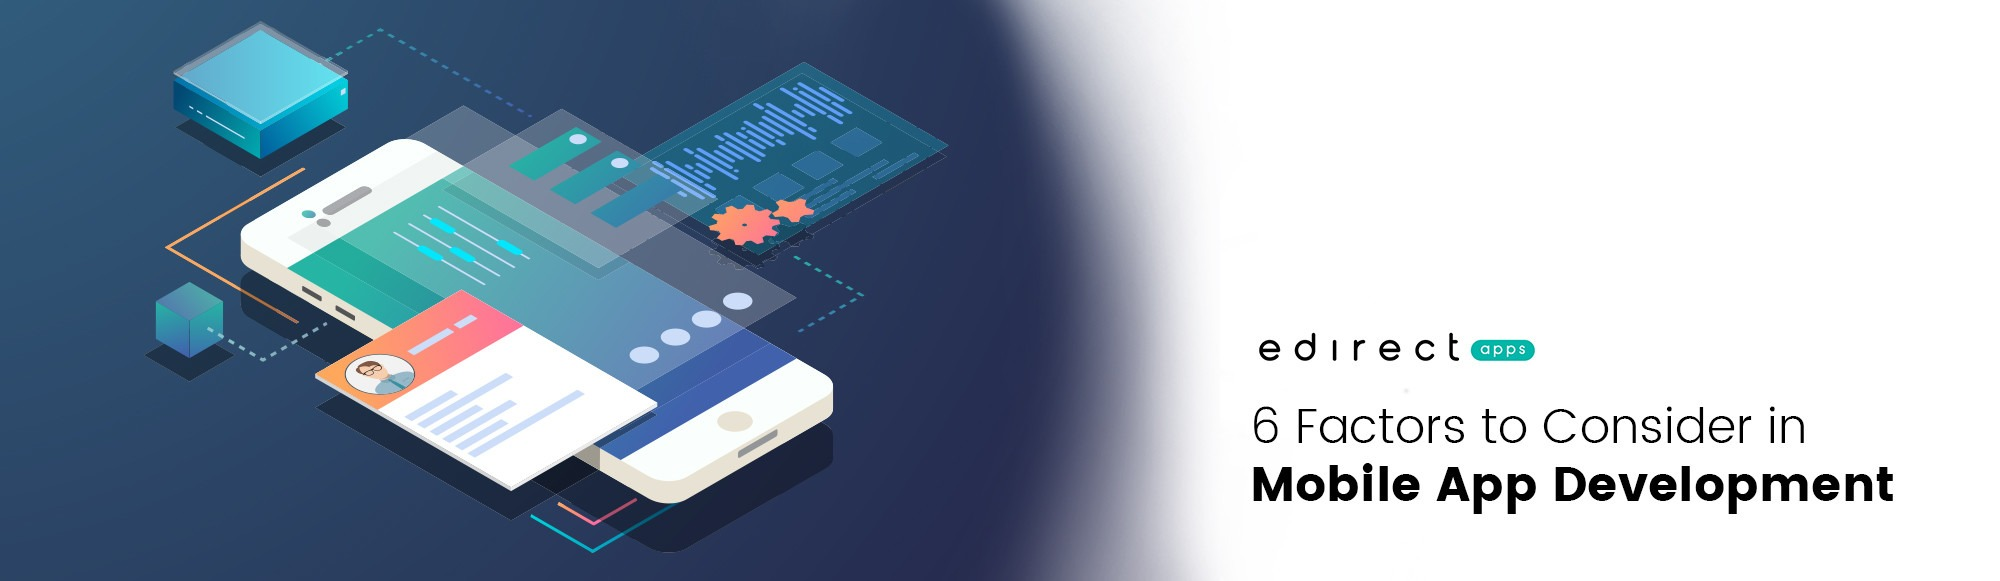 Everything you need to know about mobile app development.